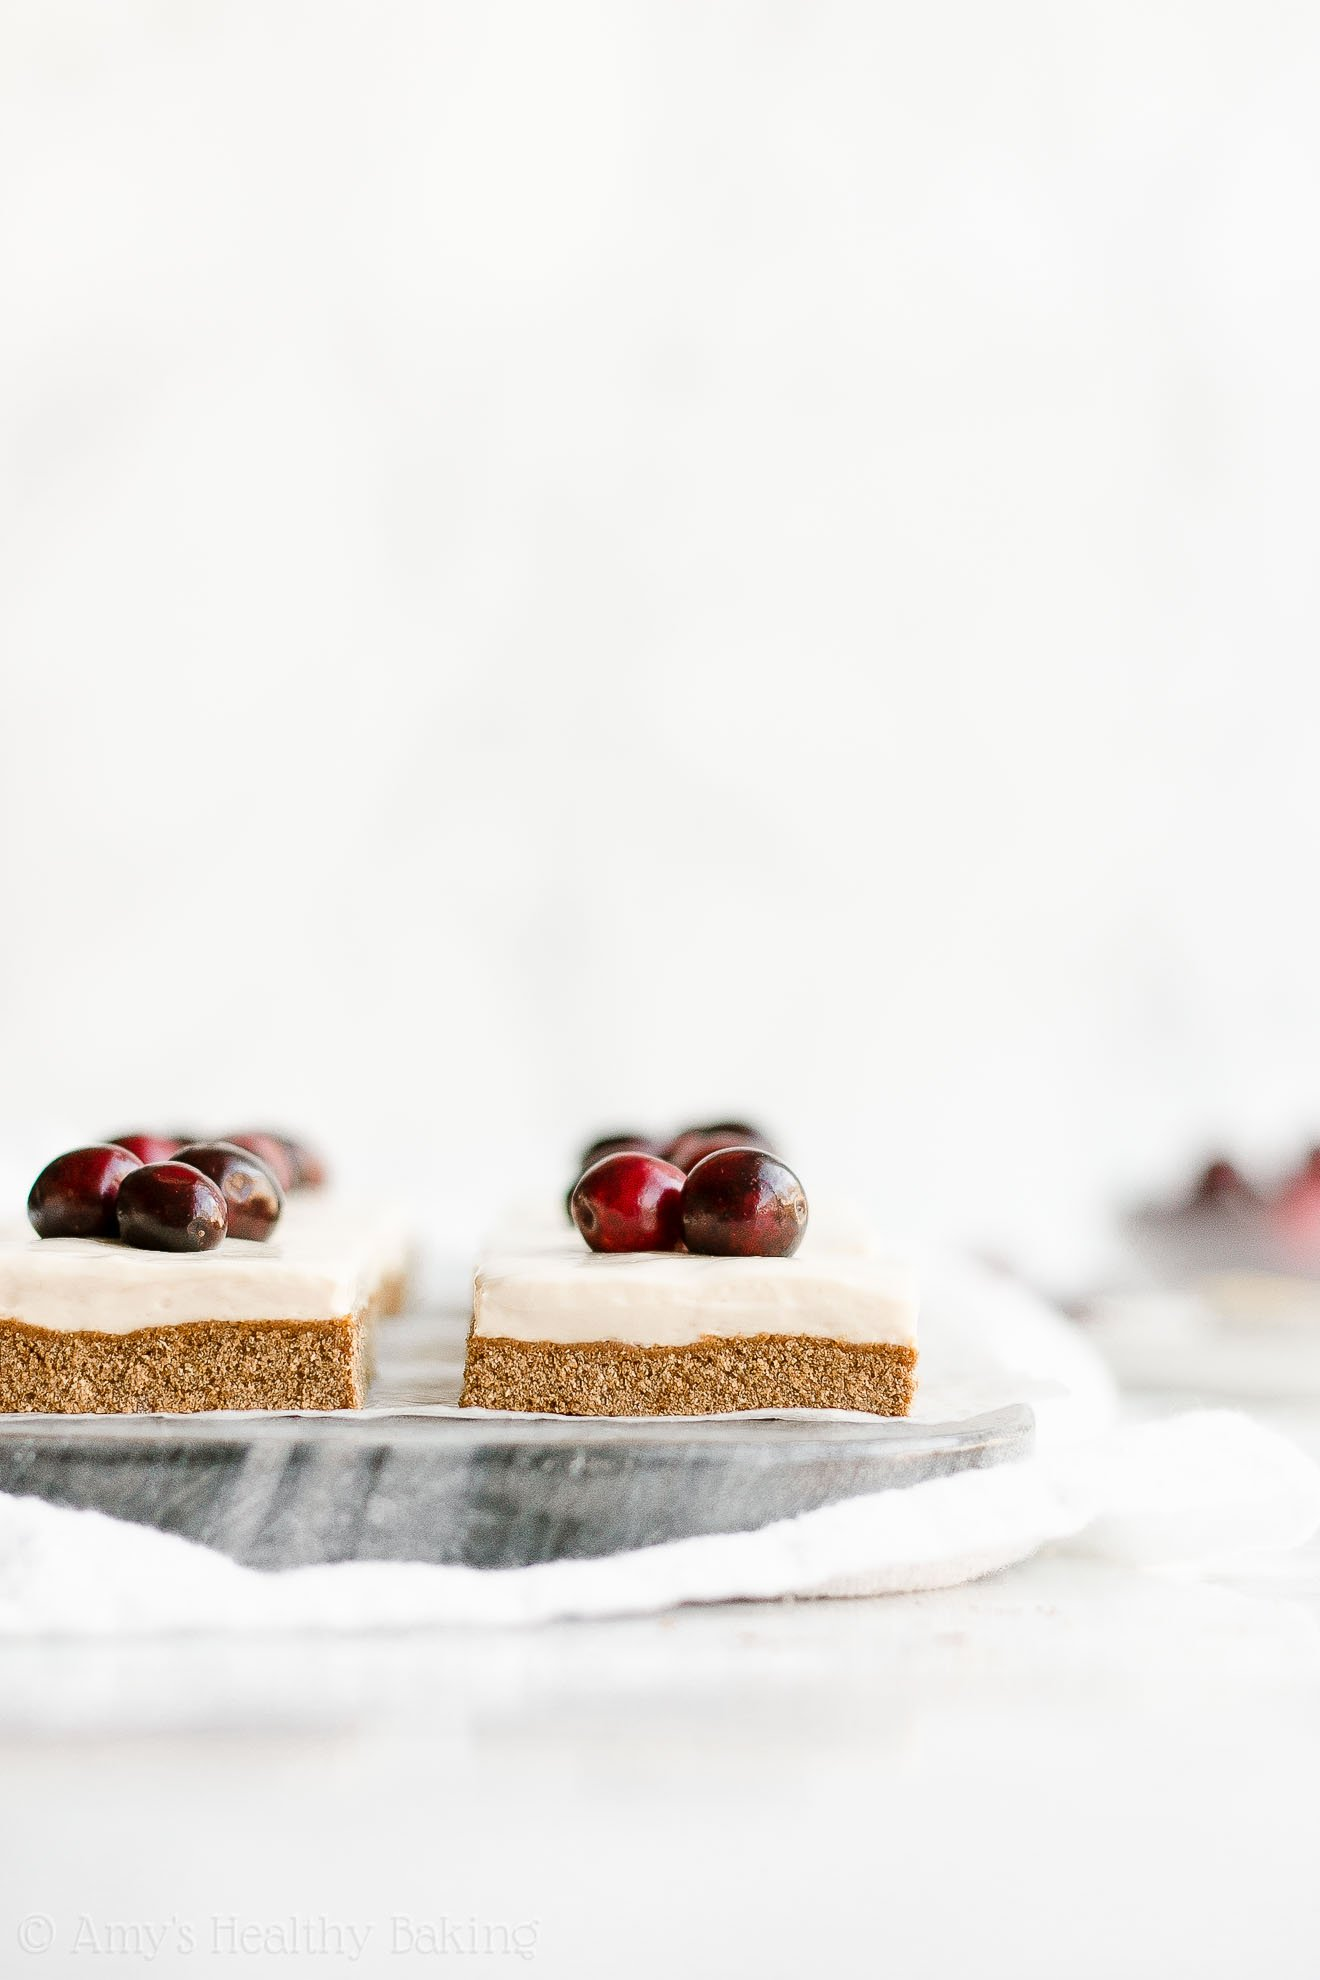 Easy Healthy Clean Eating Whole Wheat Molasses Gingerbread Cookie Bars